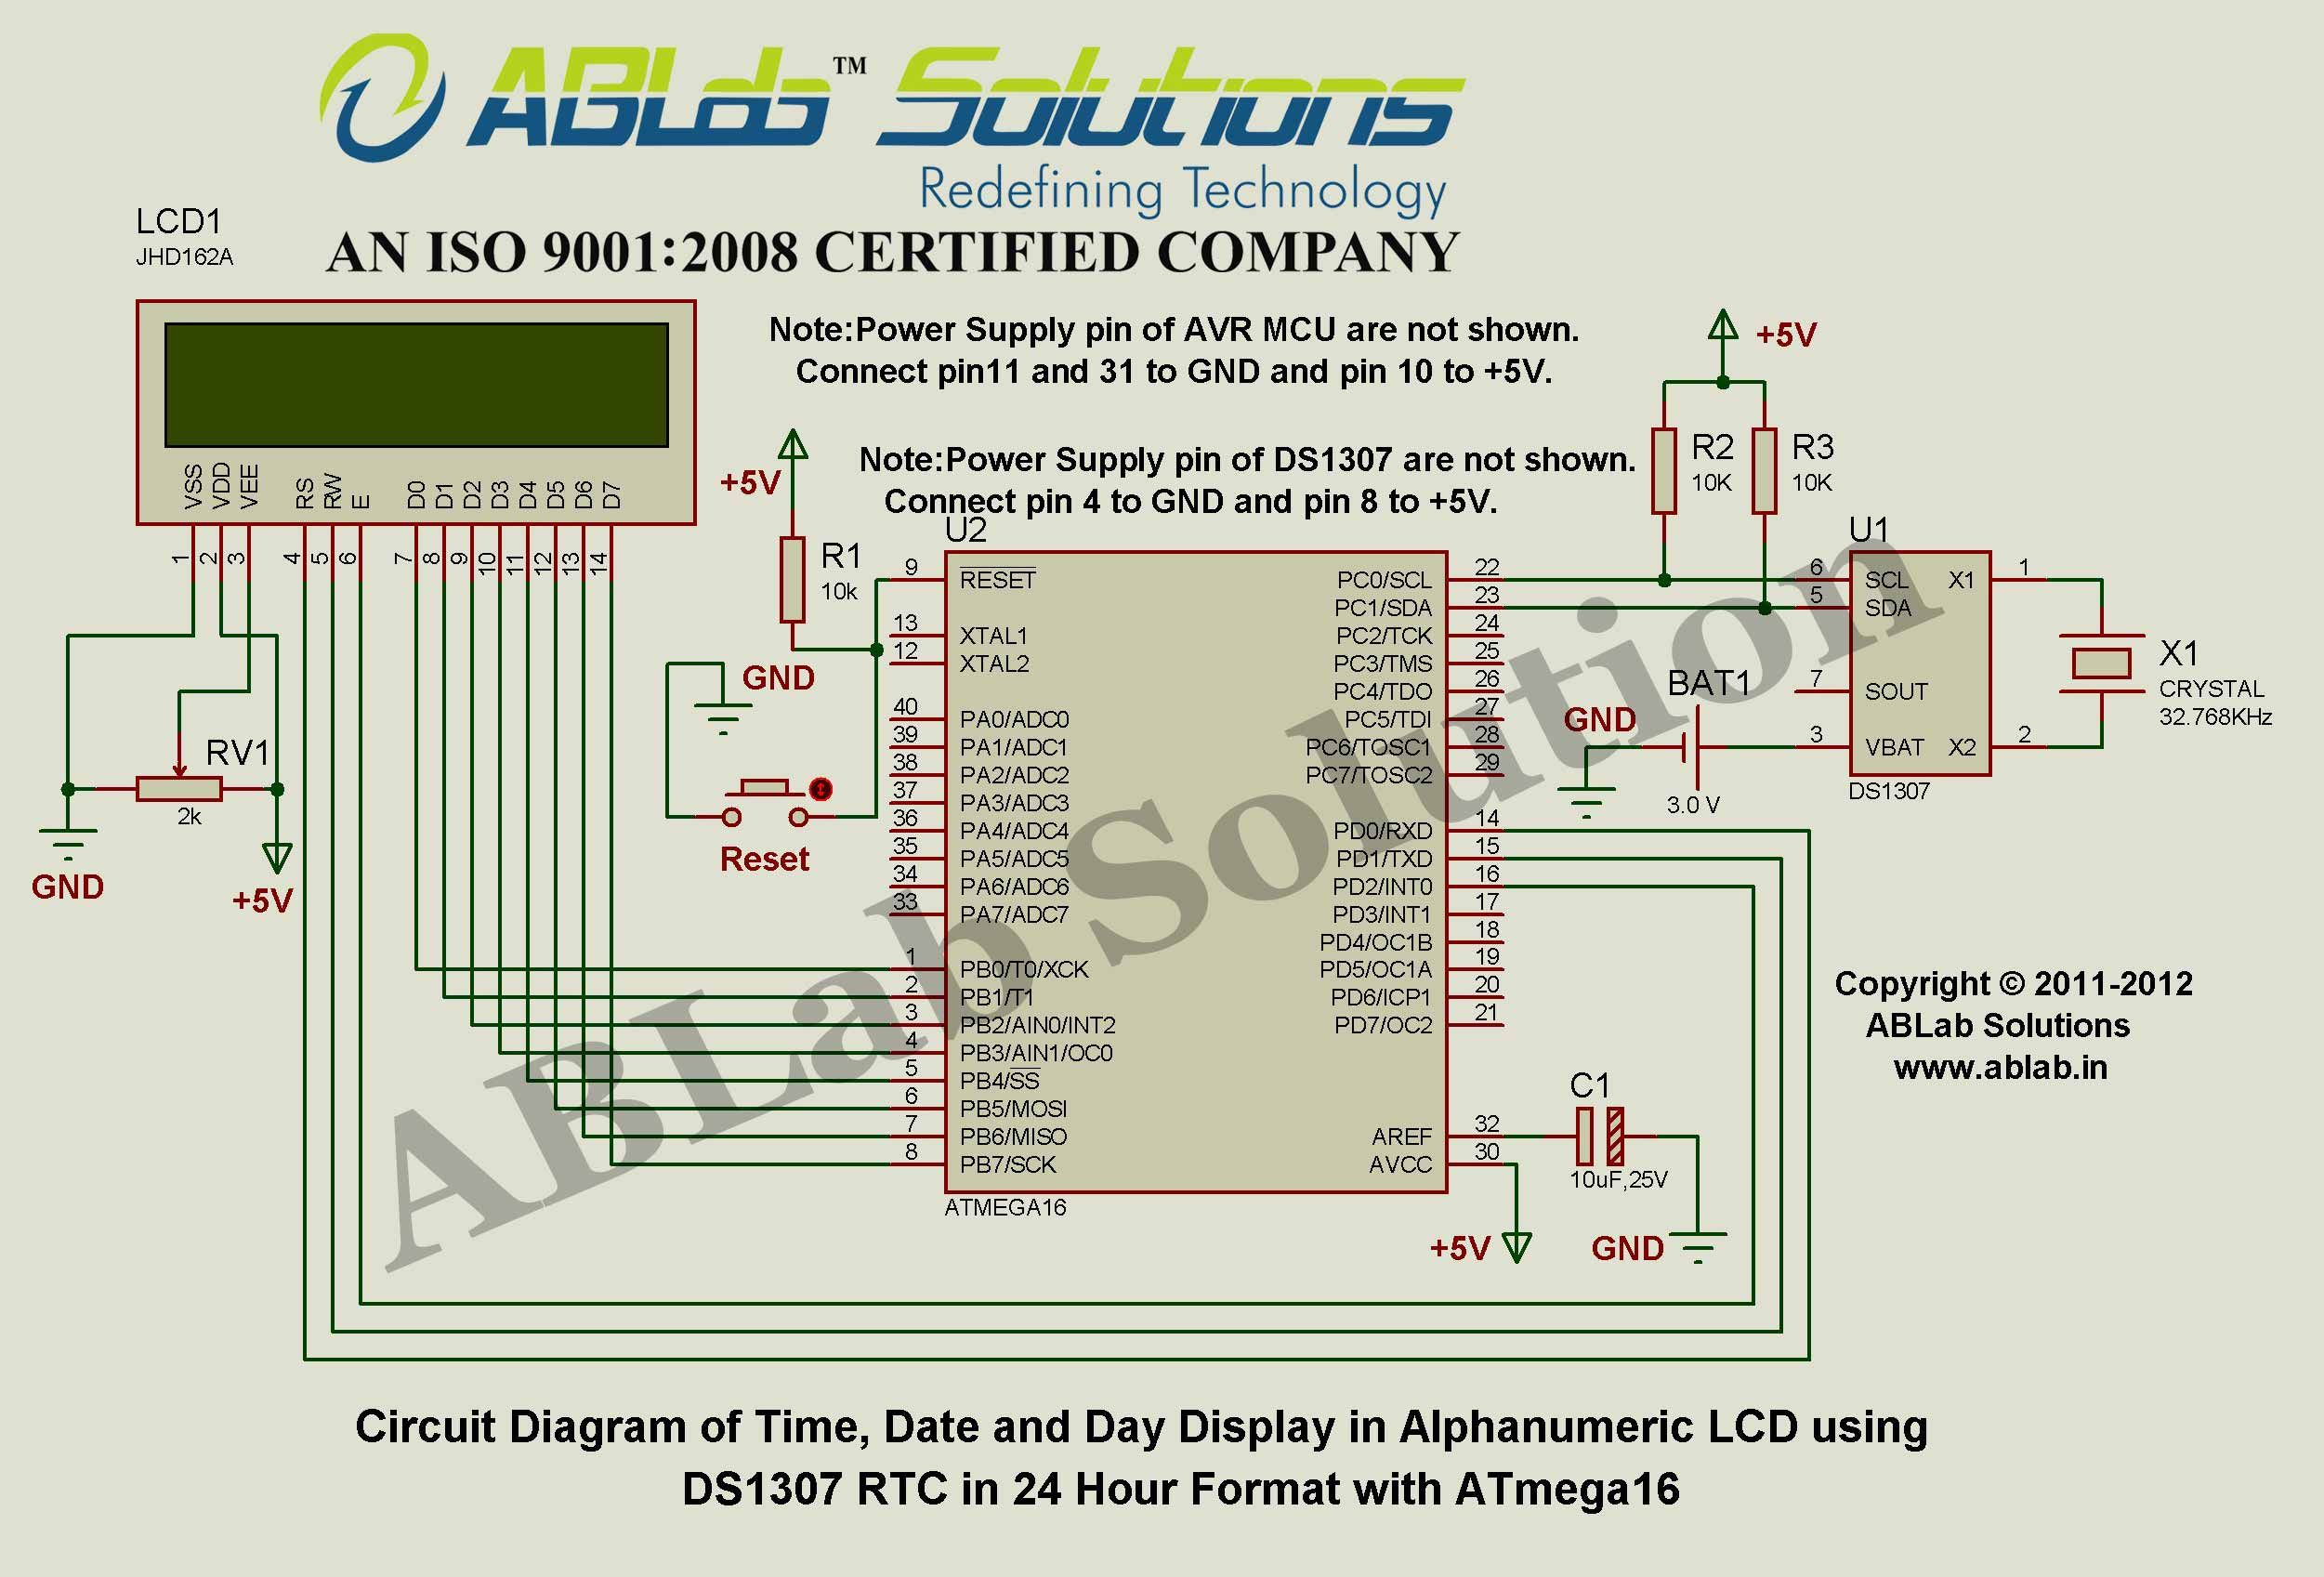 Time,-Date-and-Day-Display-in-Alphanumeric-LCD-using-DS1307